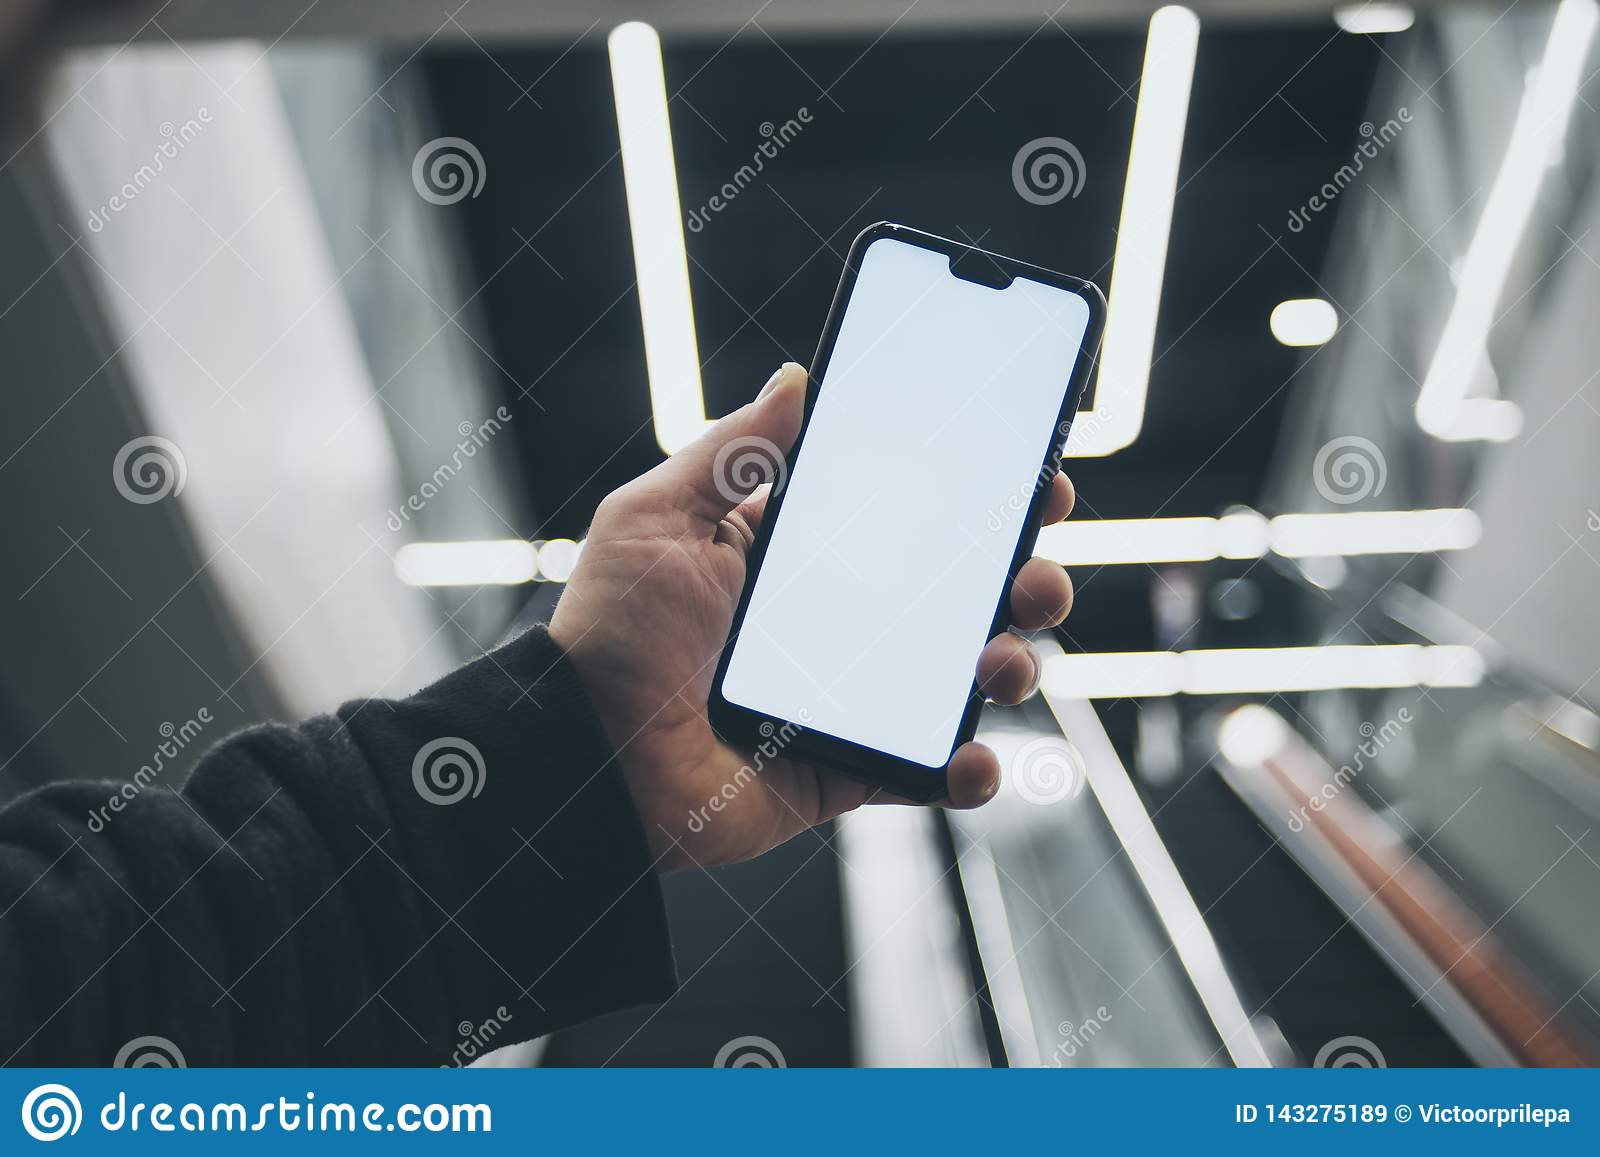 Mock up of a smartphone in hand, on the background of an escalator in a shopping center and luminous lamps.